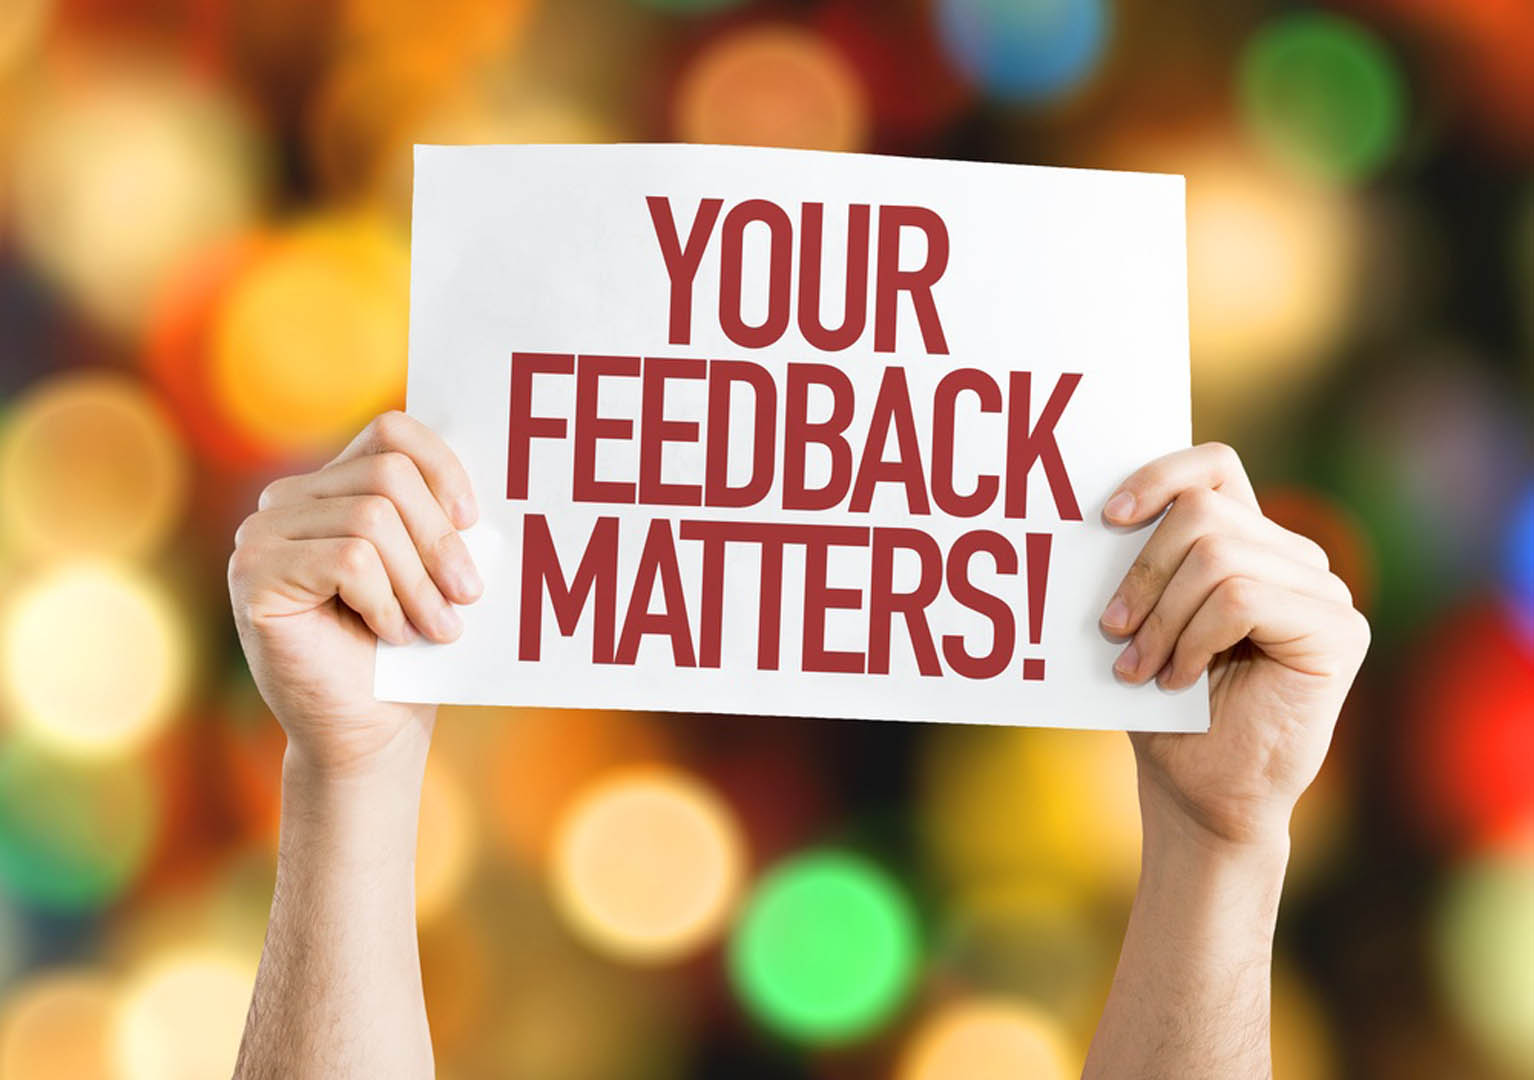 Your-Feedback-Matters-placard-with-bokeh-background